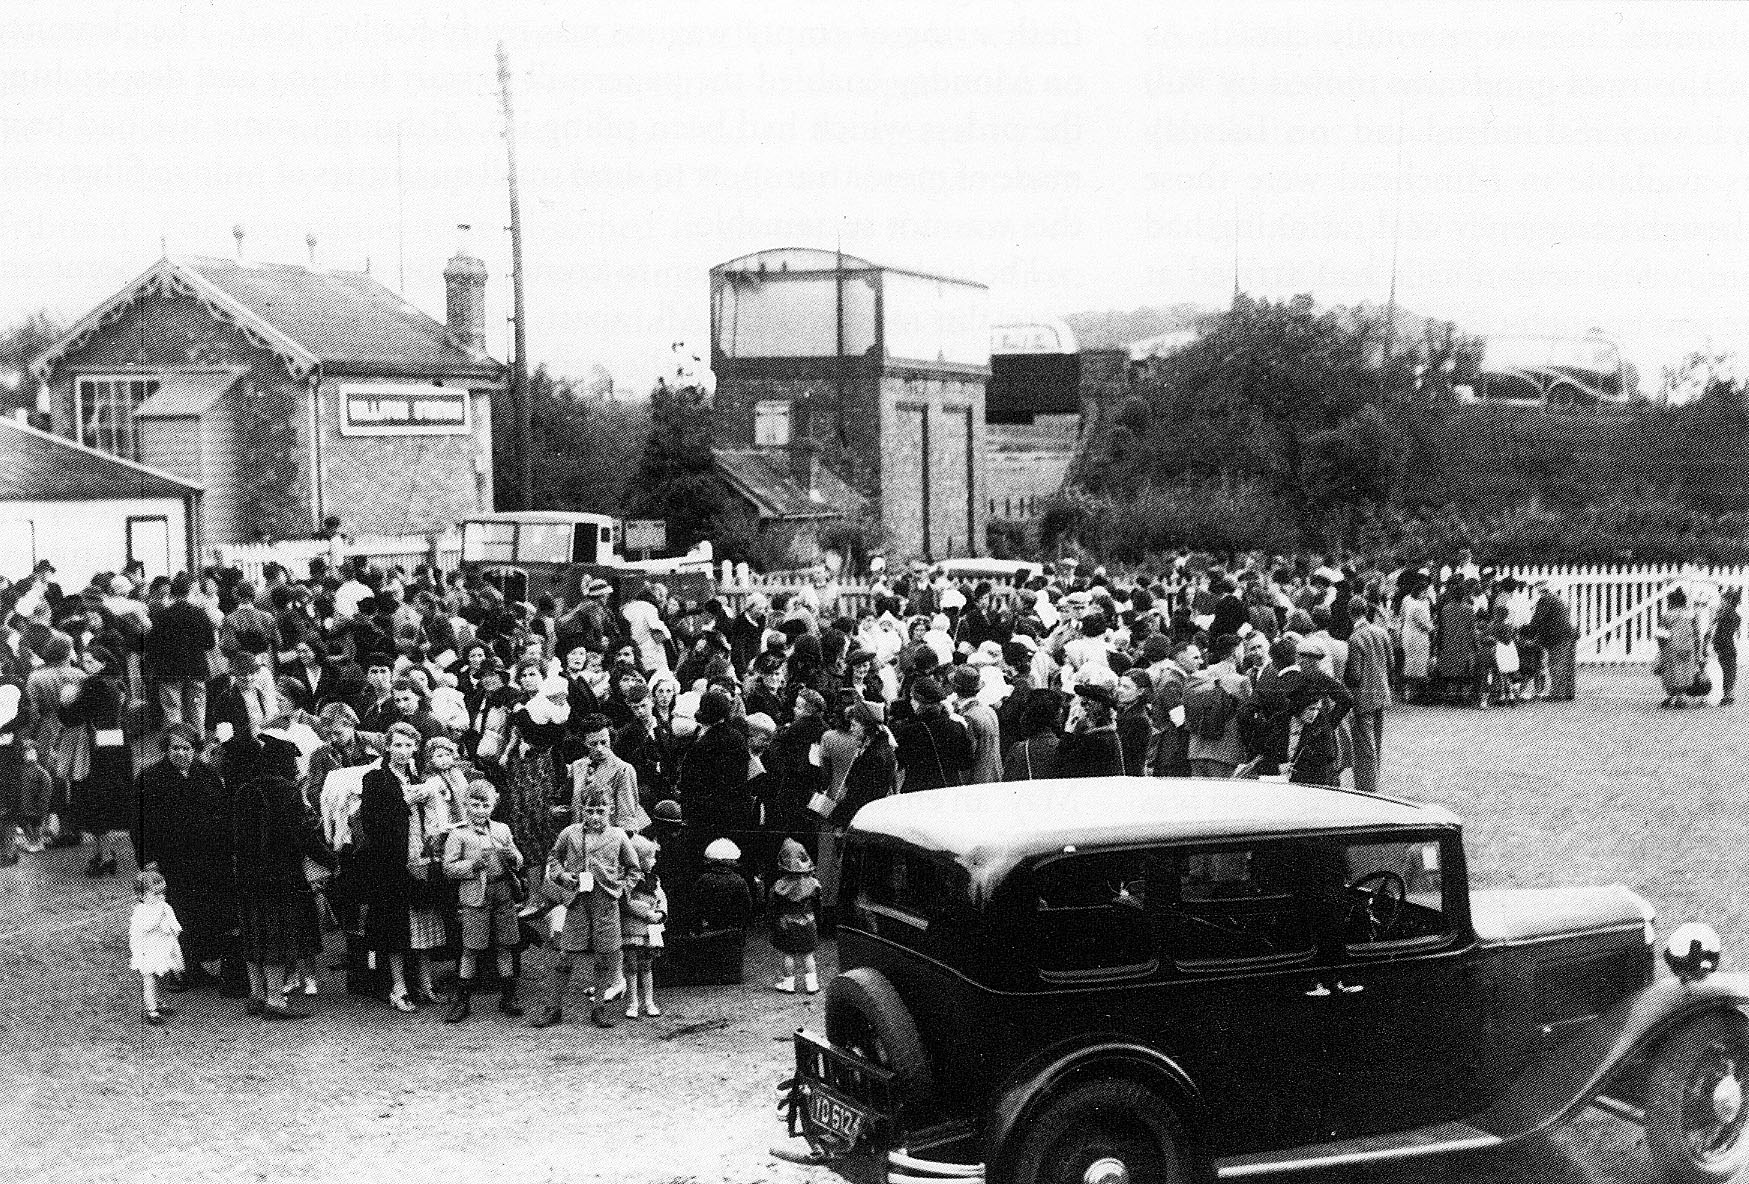 1939 - Evacuees from London arriving at Williton Station September. © Somerset County Council Library Services